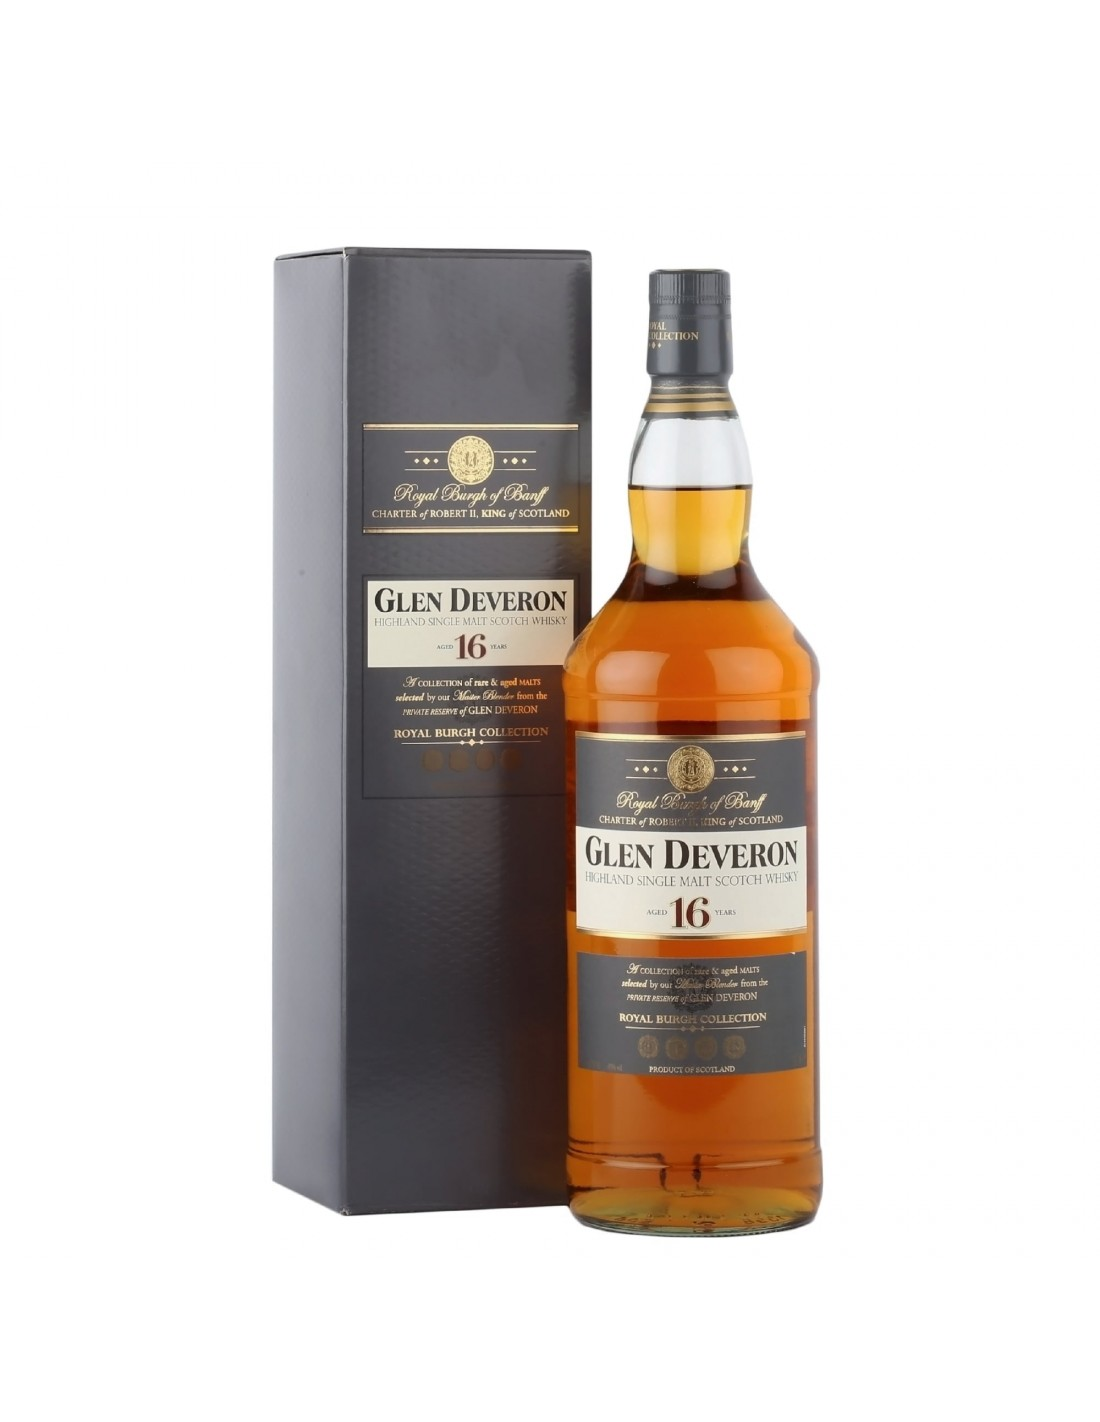 Whisky Glen Deveron, 16 ani, 40% alc., 1L, Scotia